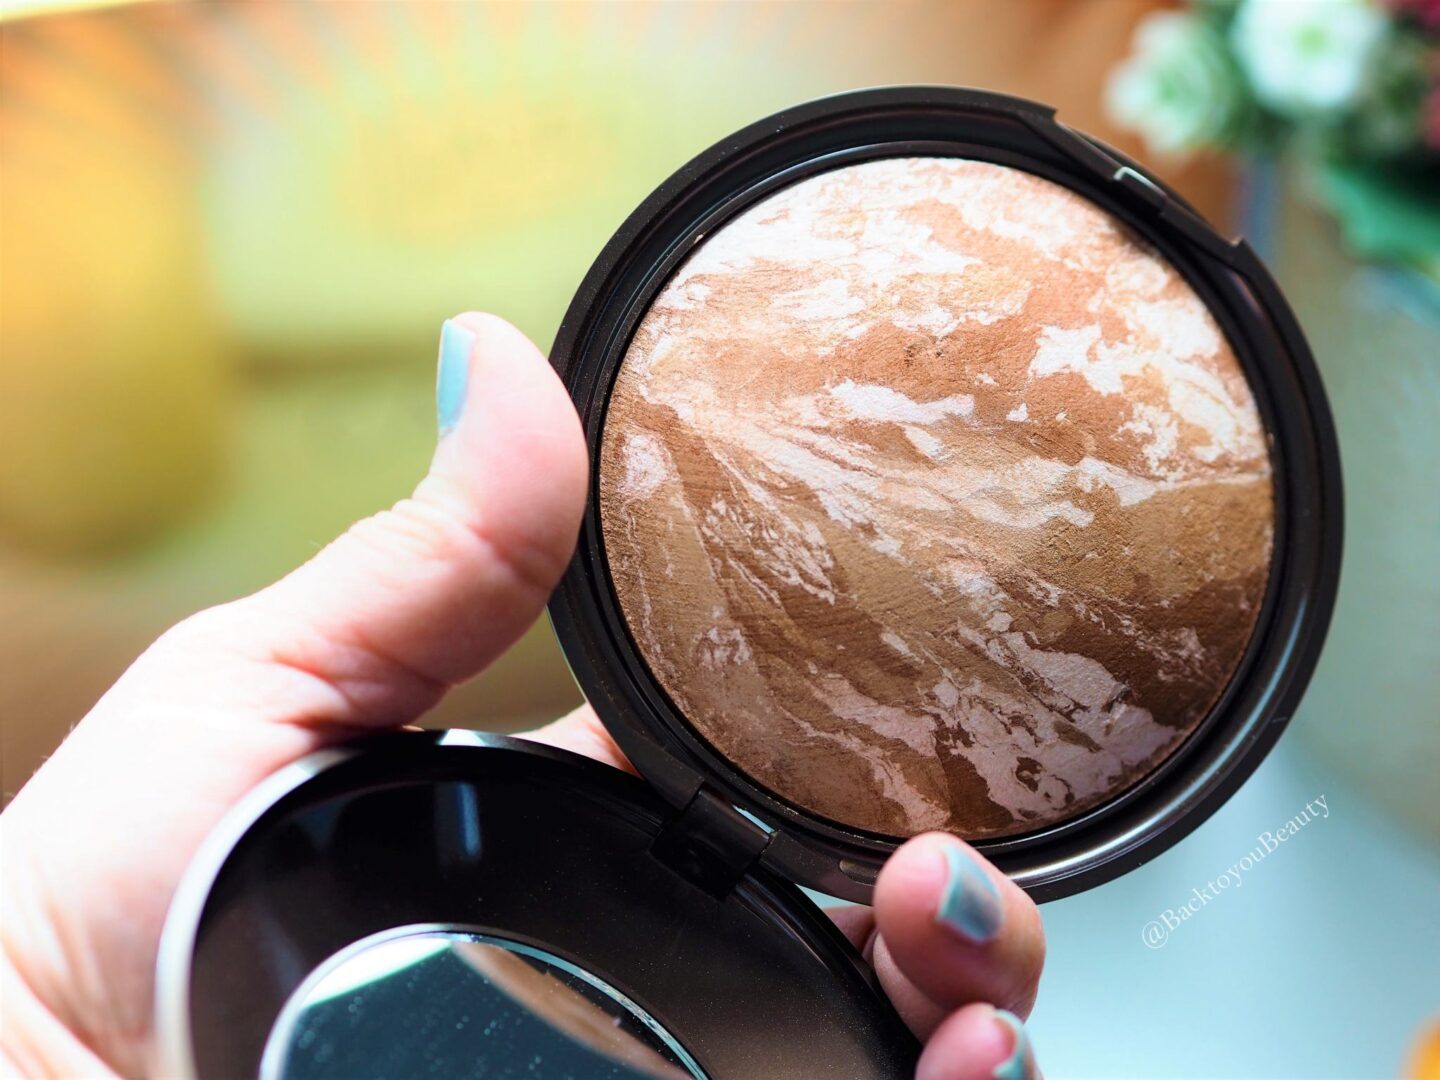 Supersize Baked Body Frosting in Tahitian Glow